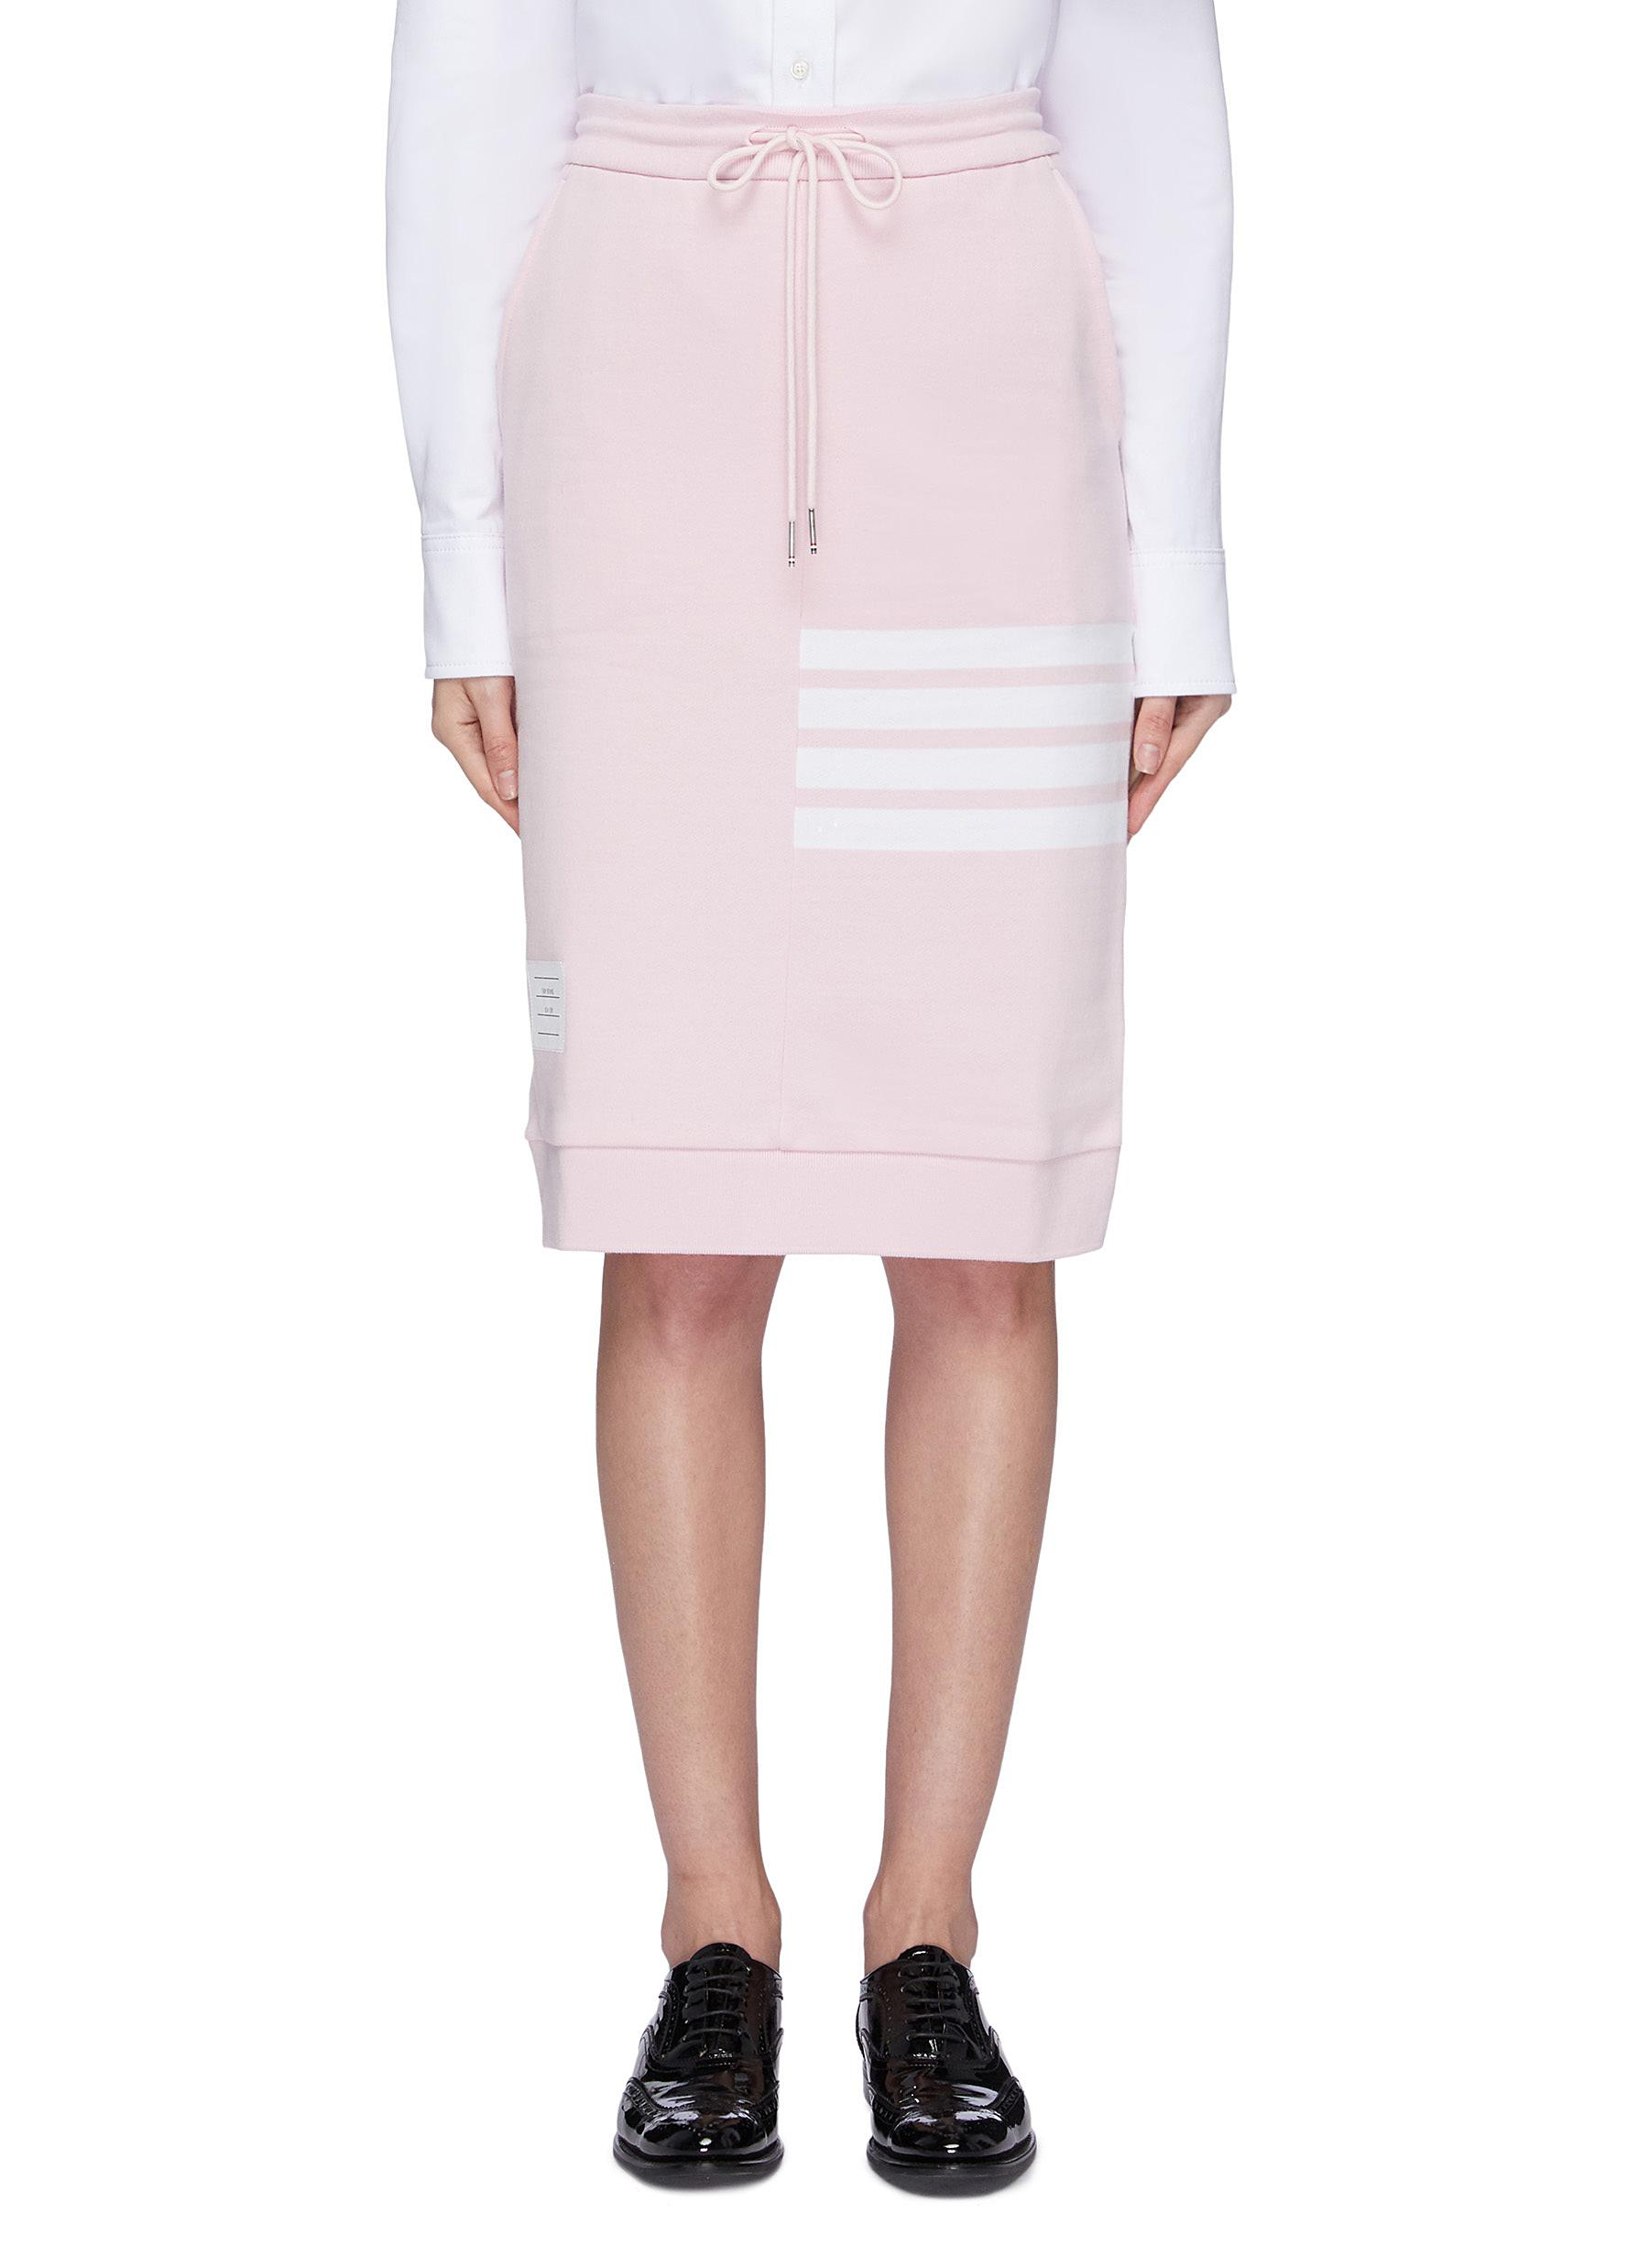 Stripe drawstring French terry sack skirt by Thom Browne